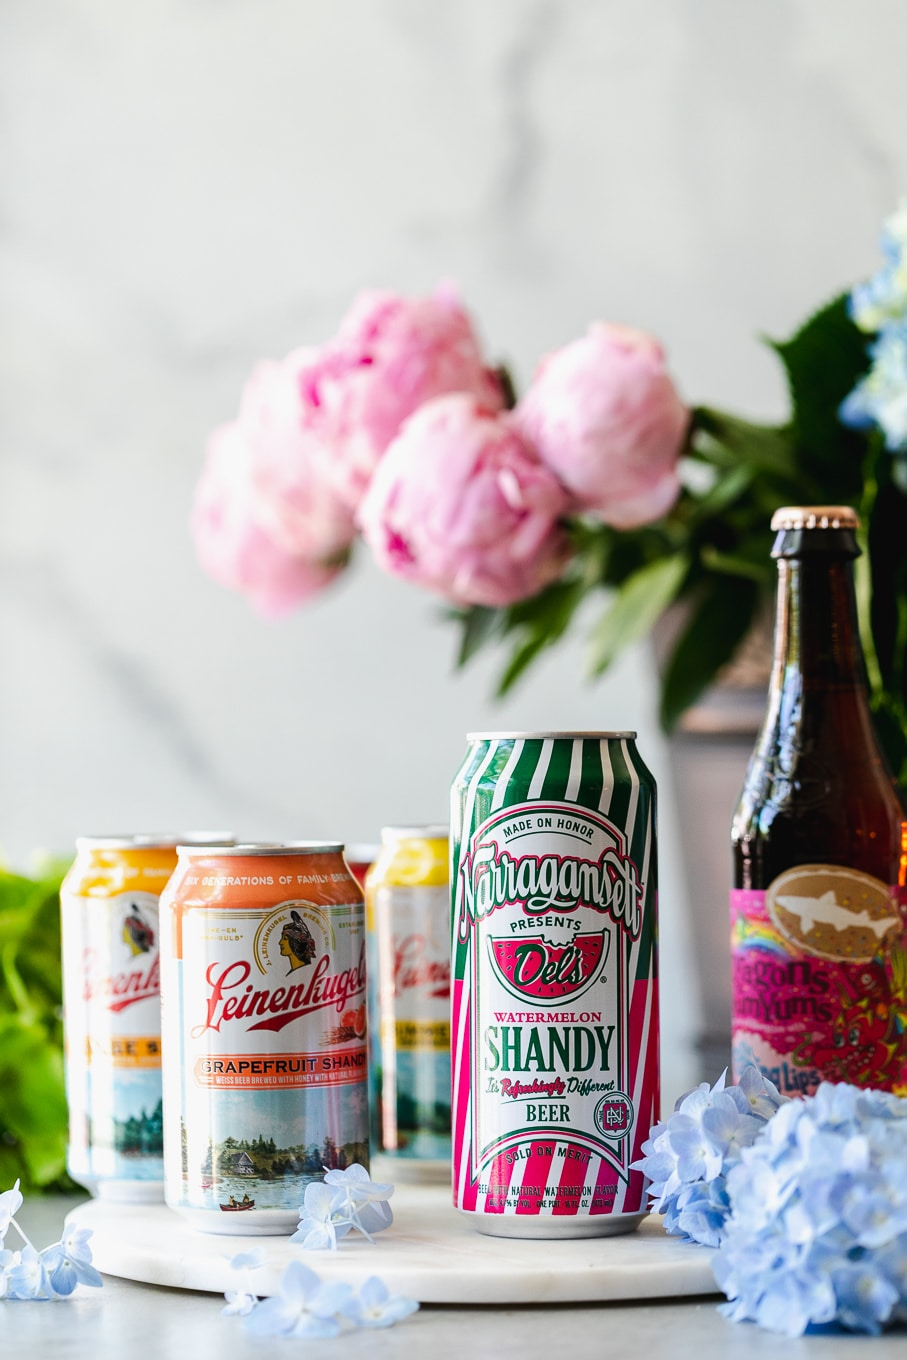 Shot of colorful labeled beers with flowers in the background